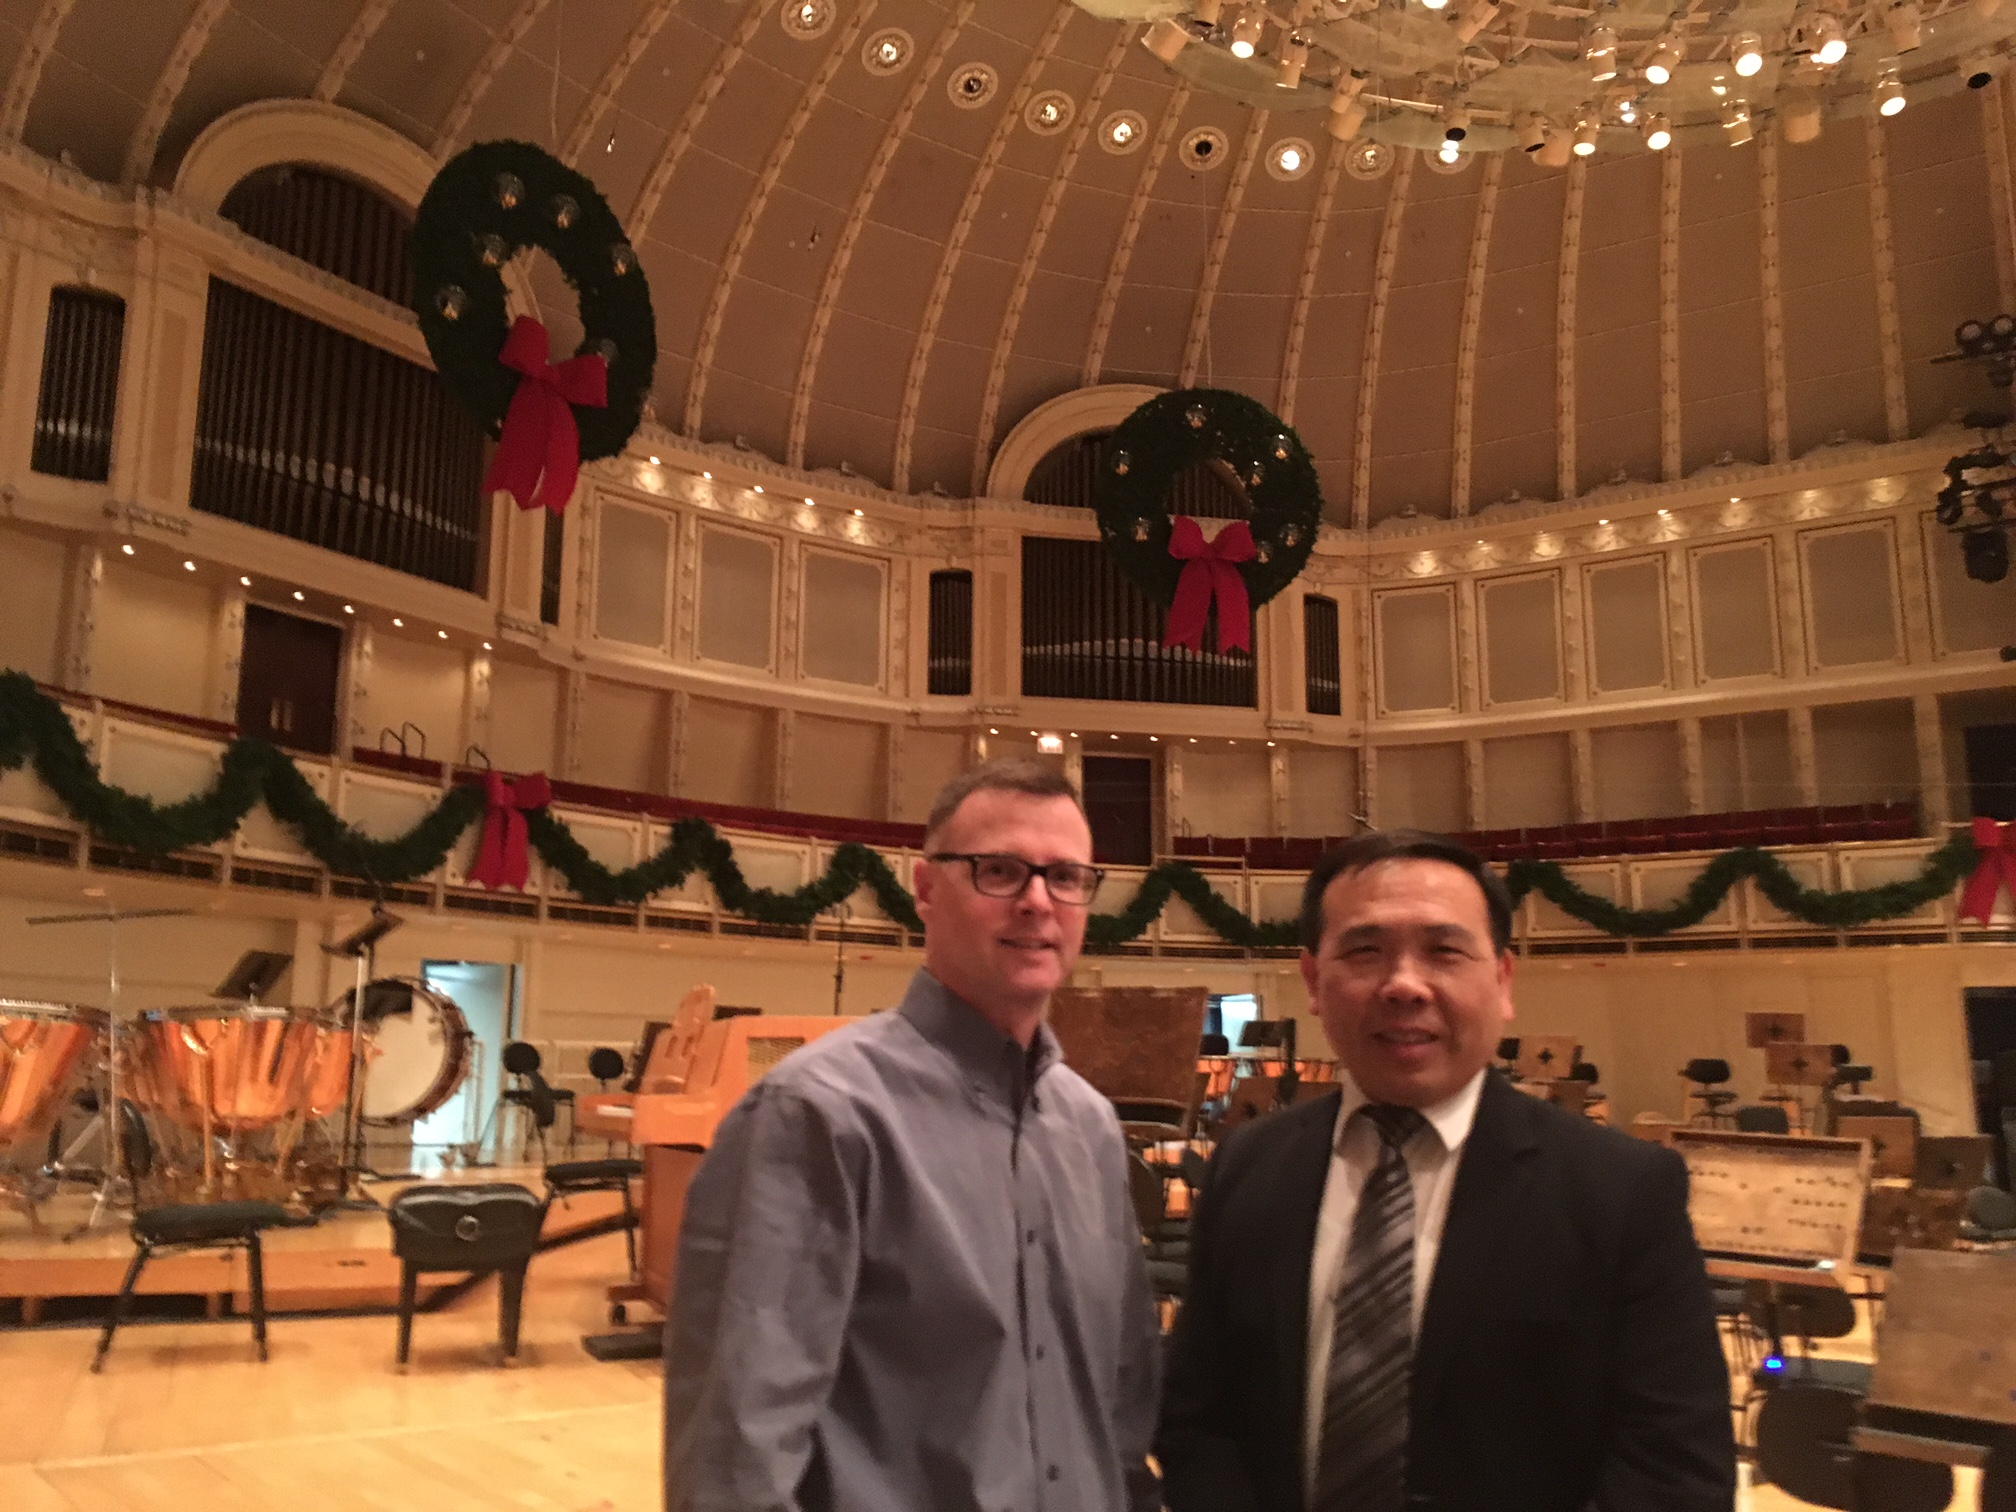 Visit Assistant Director Michael Lavin of Chicago Symphony Orchestra